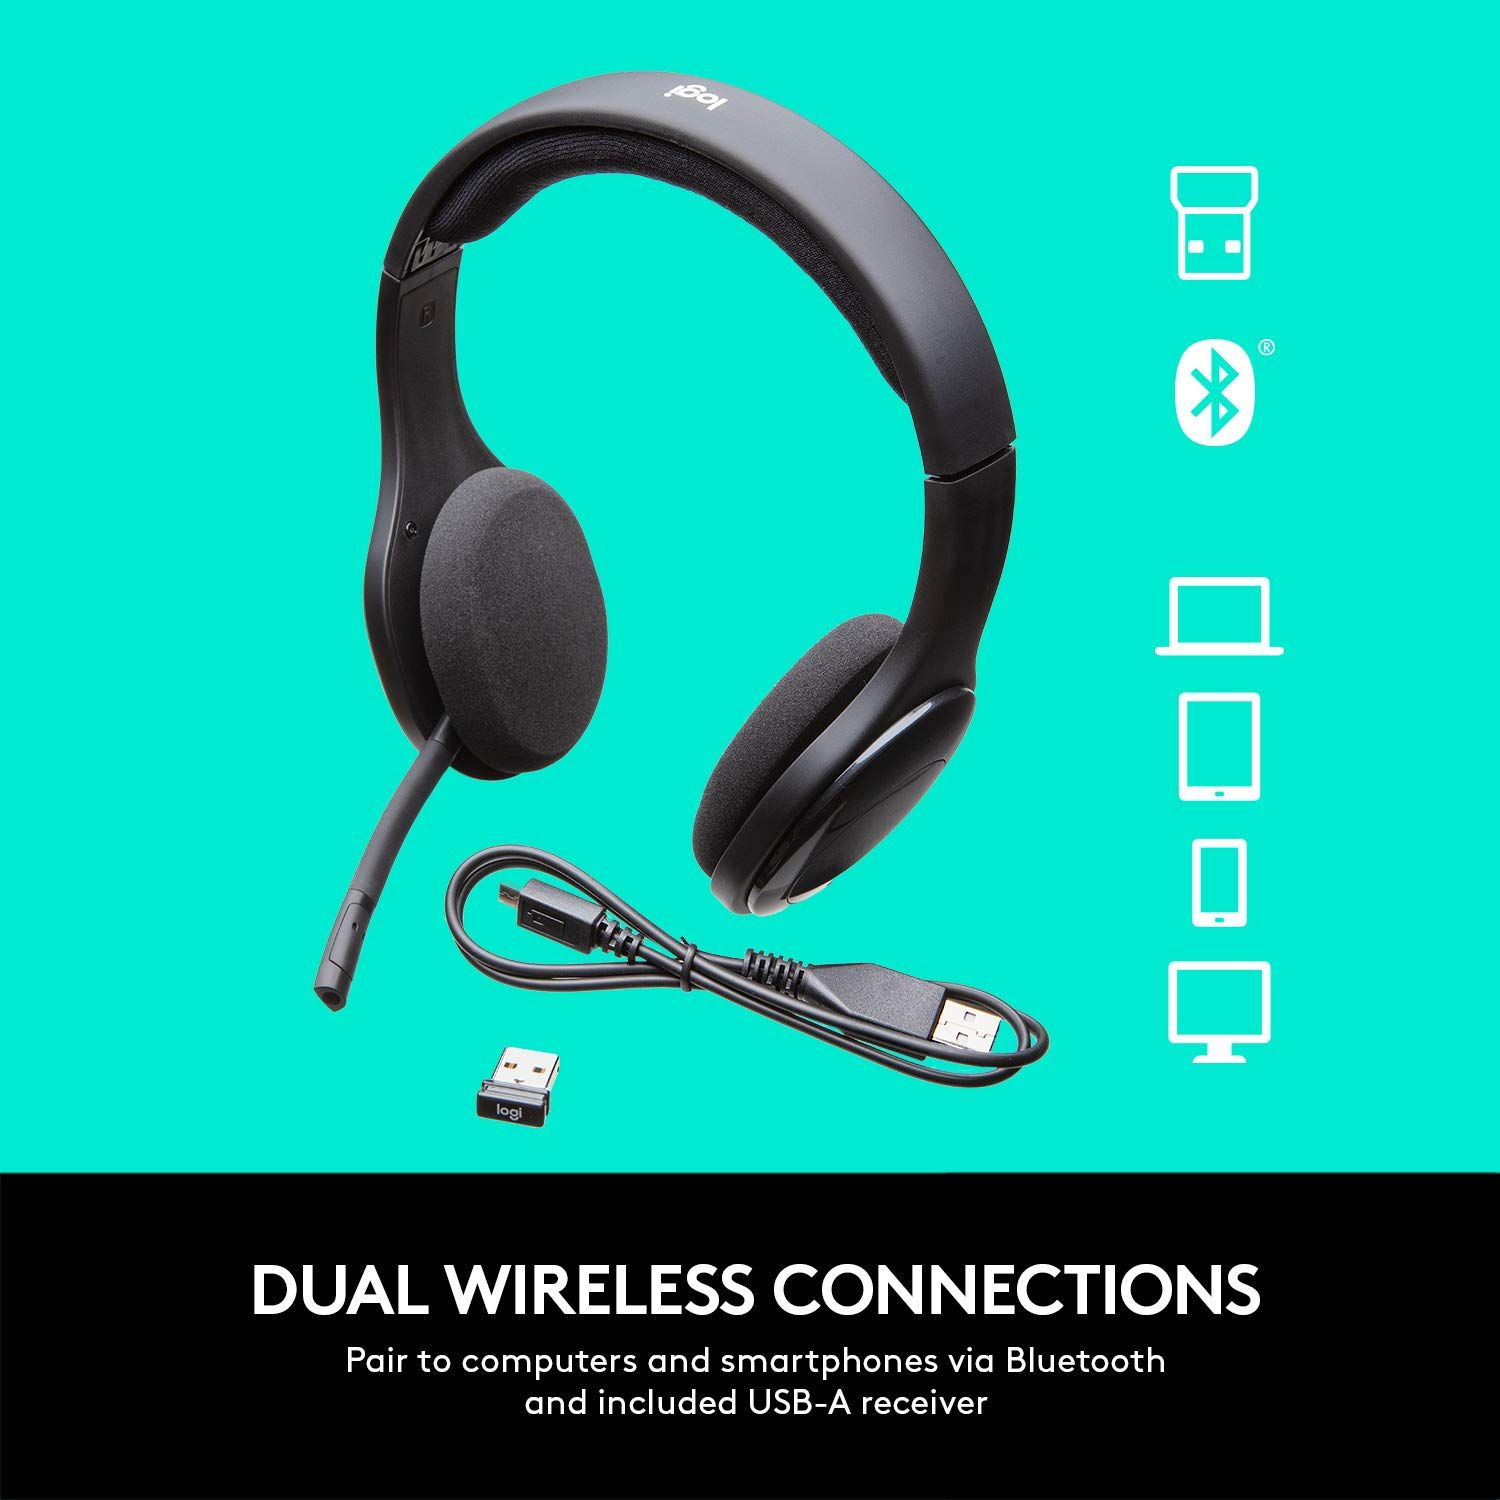 Logitech H800 Bluetooth Wireless Headset With Mic For Pc Tablets And Smartphones Bluetooth Wireless Logitech Headset Wireless Headset Headset Logitech